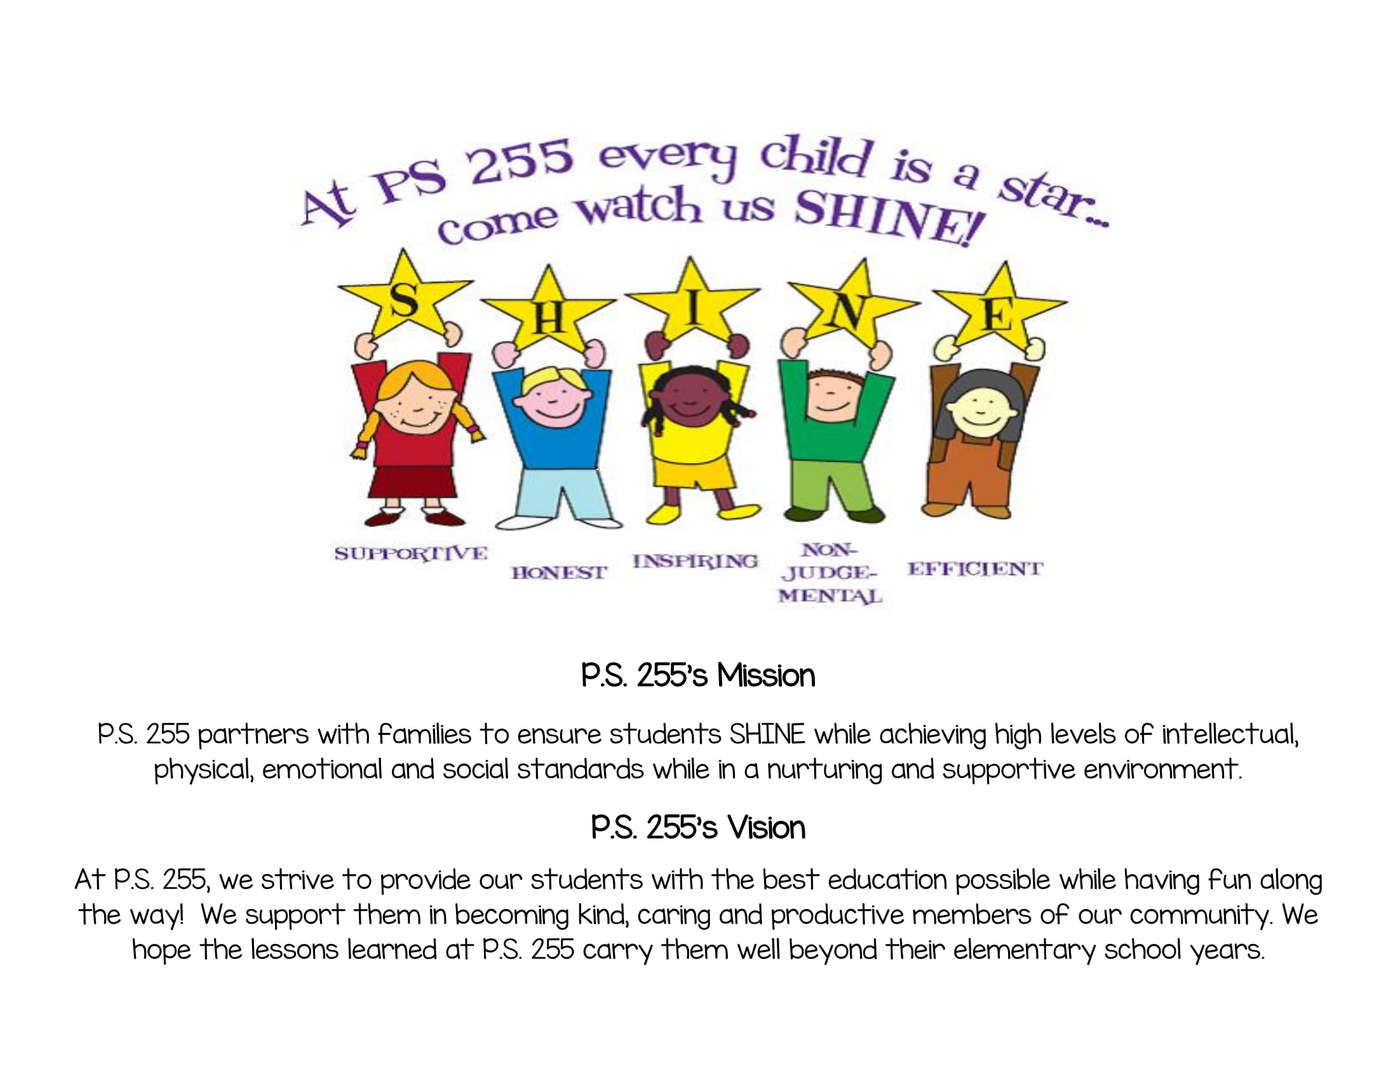 P.S. 255's Mission and Vision statement